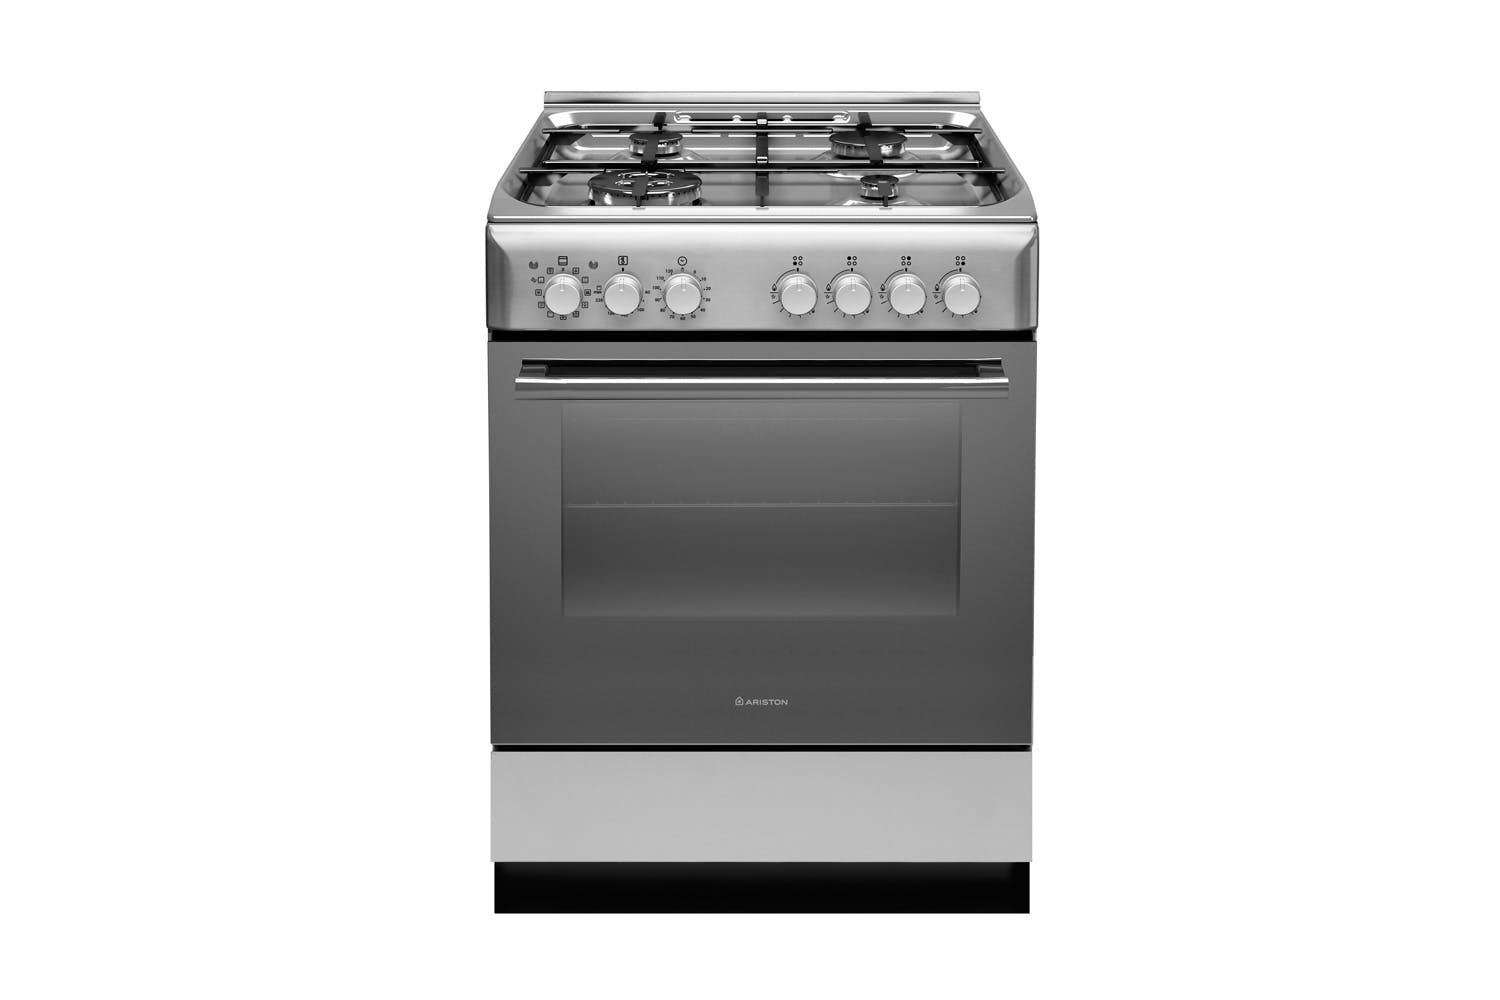 Gas Stainless Steel Cooktop Ariston 60cm Freestanding Electric Oven With Gas Cooktop